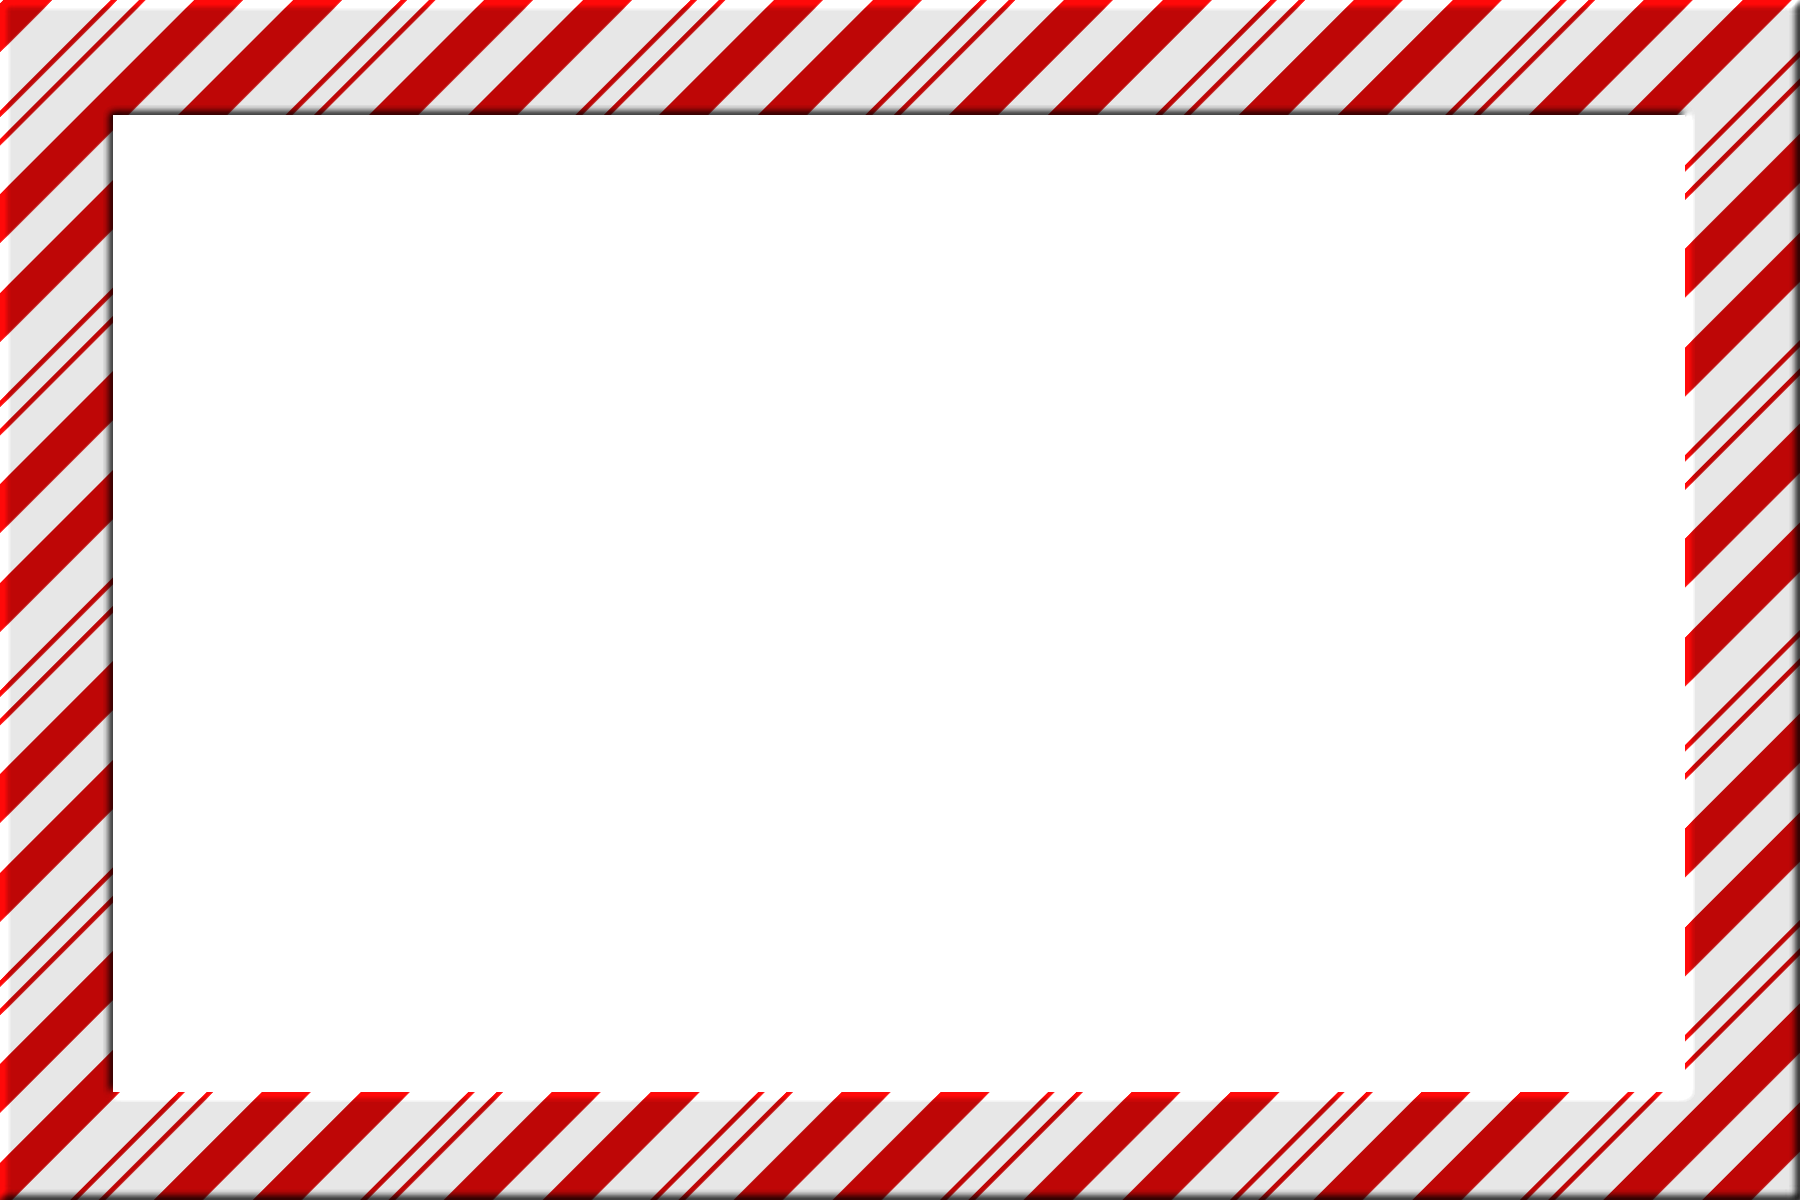 Candy Cane clipart divider Cliparts Pie Candy Candy cane